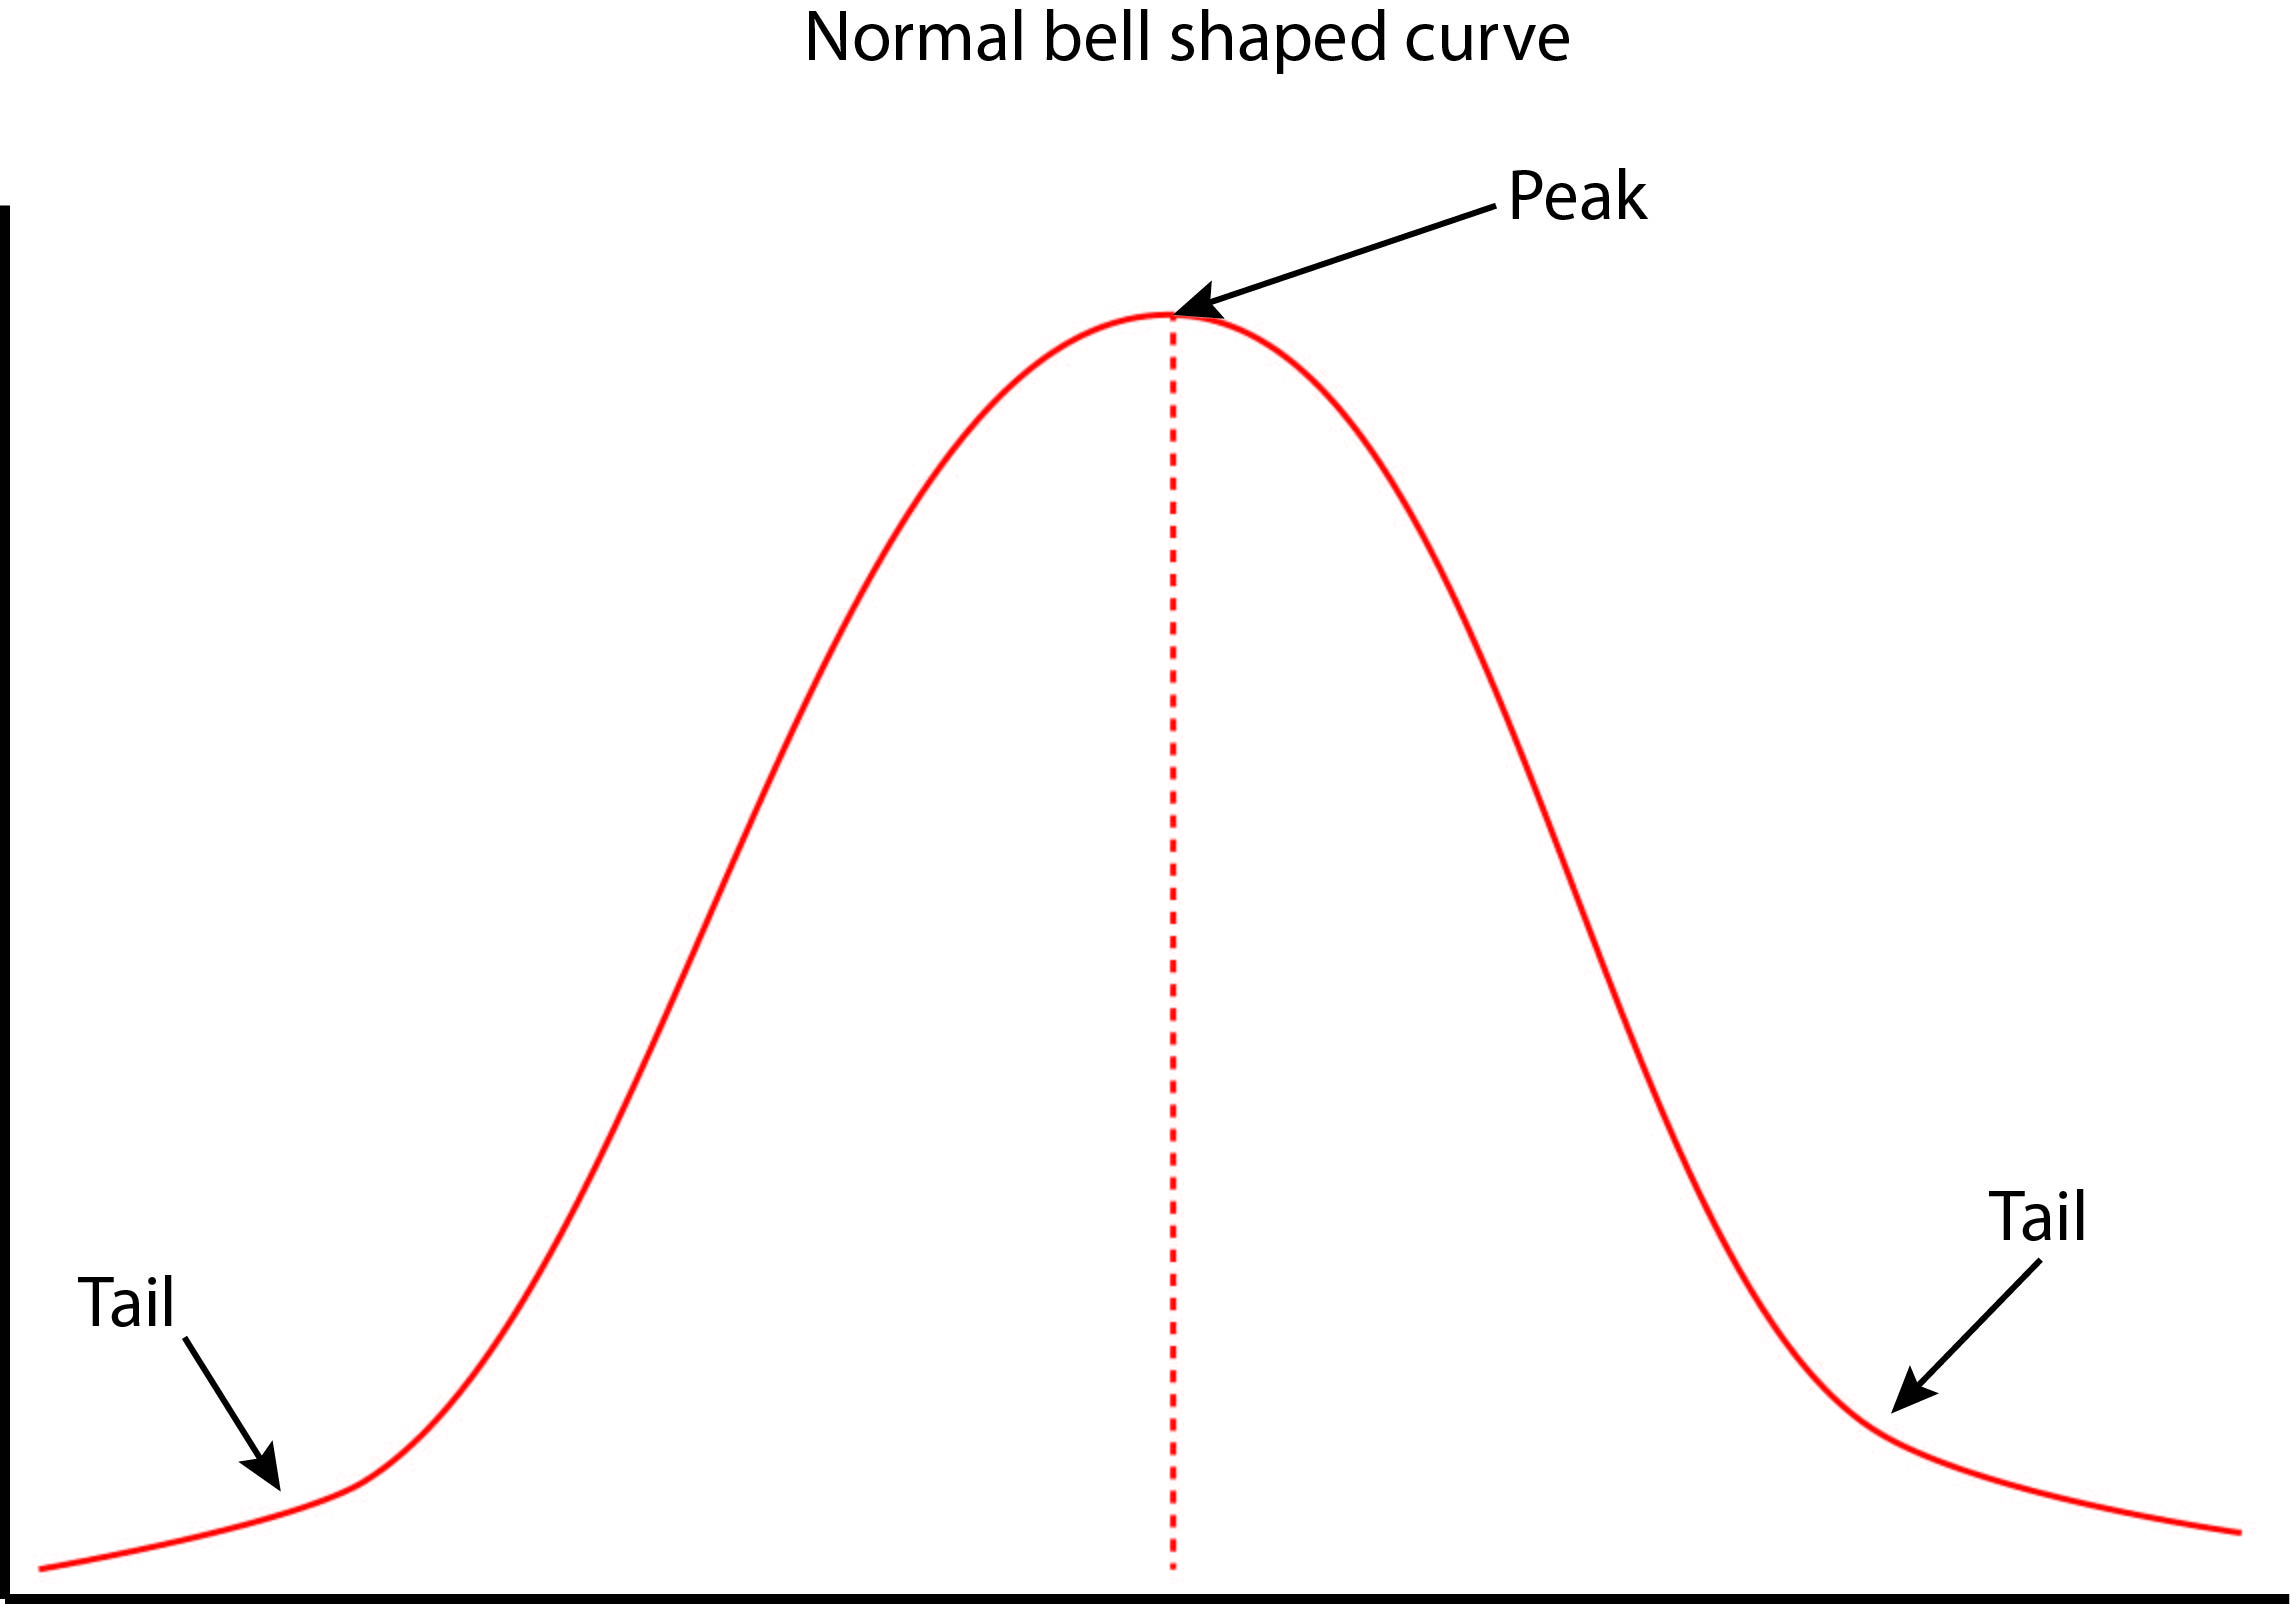 This is an example of an evenly distributed bell curve with the mode going through the centre